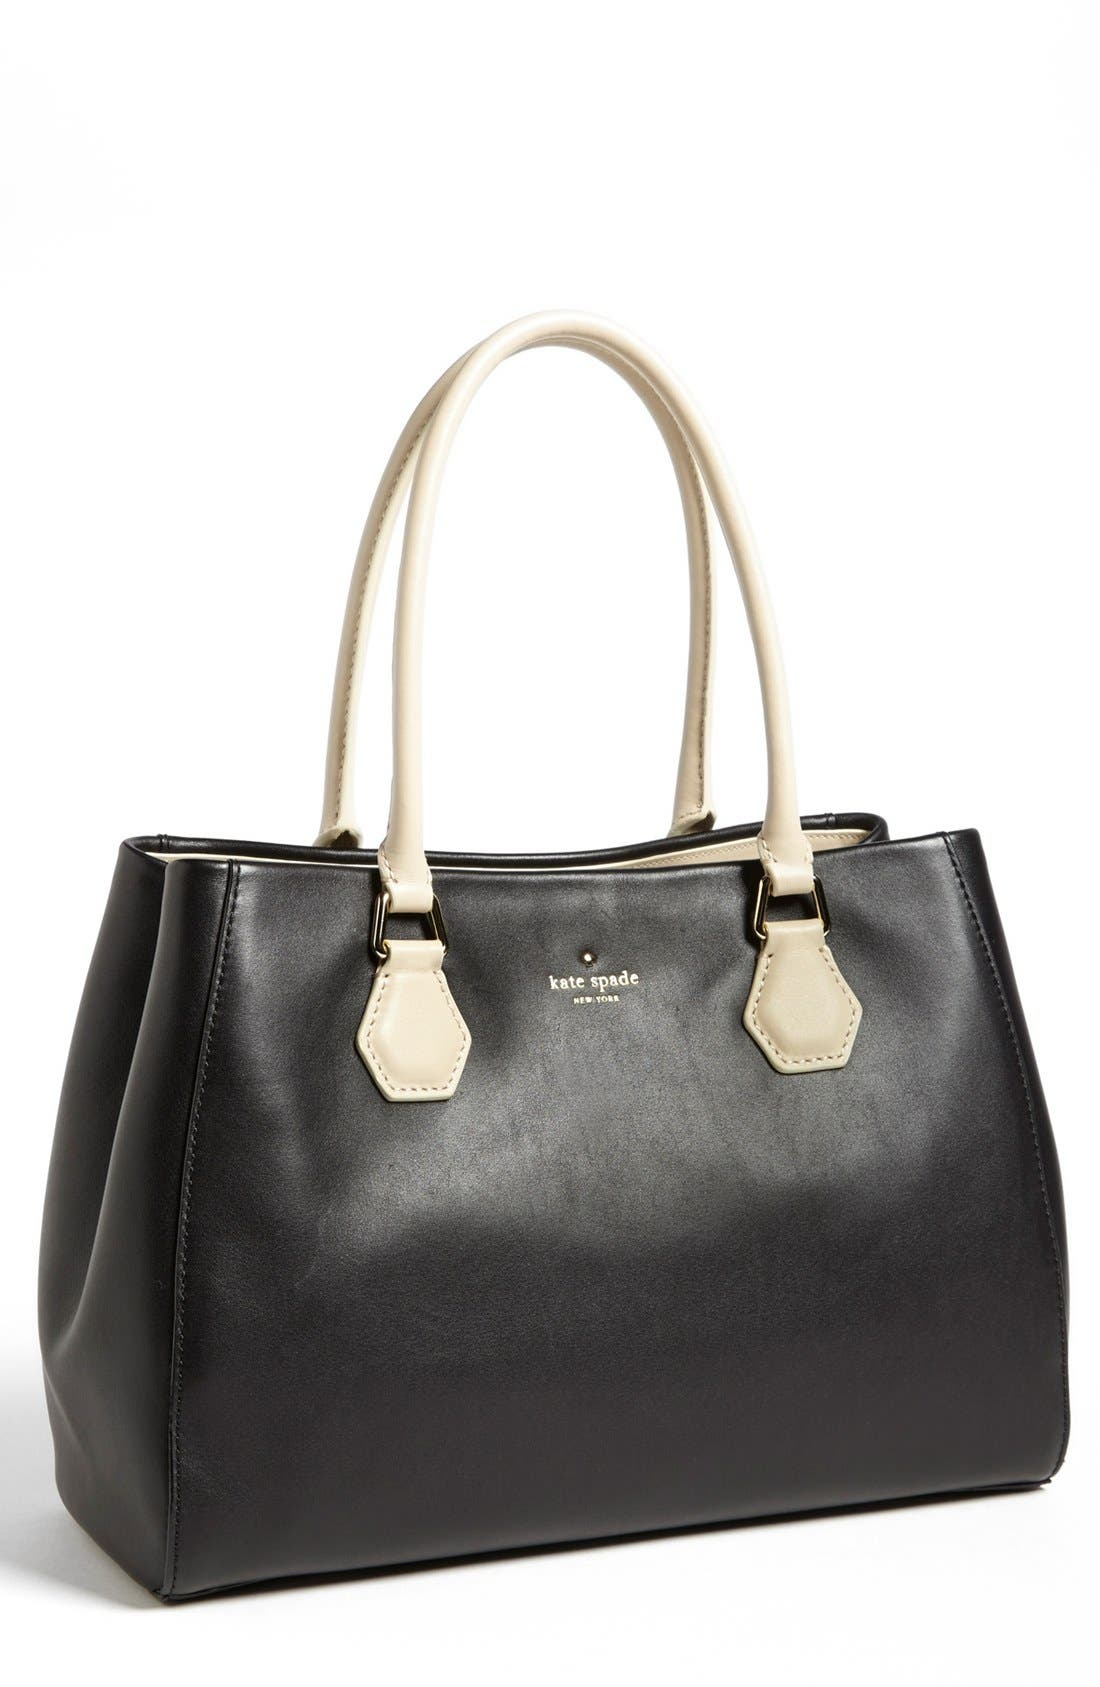 Alternate Image 1 Selected - kate spade new york 'catherine street - wensley' leather tote